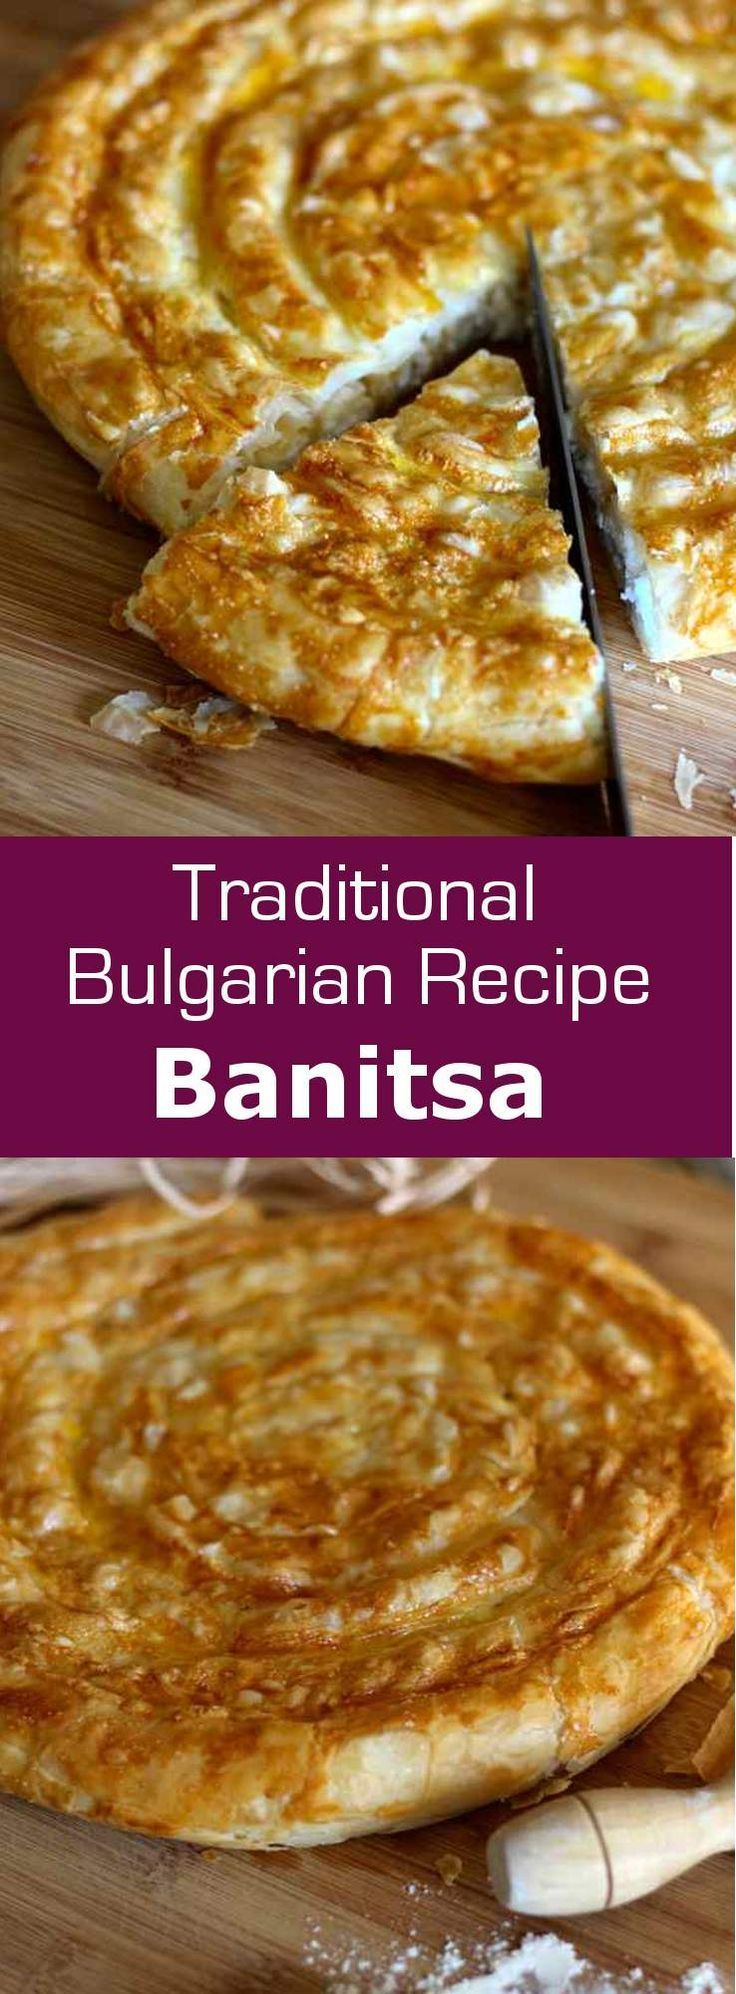 Banitsa is a traditional Bulgarian recipe that consists of eggs and cheese between filo pastry sheets formed in a spiral before baking.  #cheese #bulgaria #196flavors